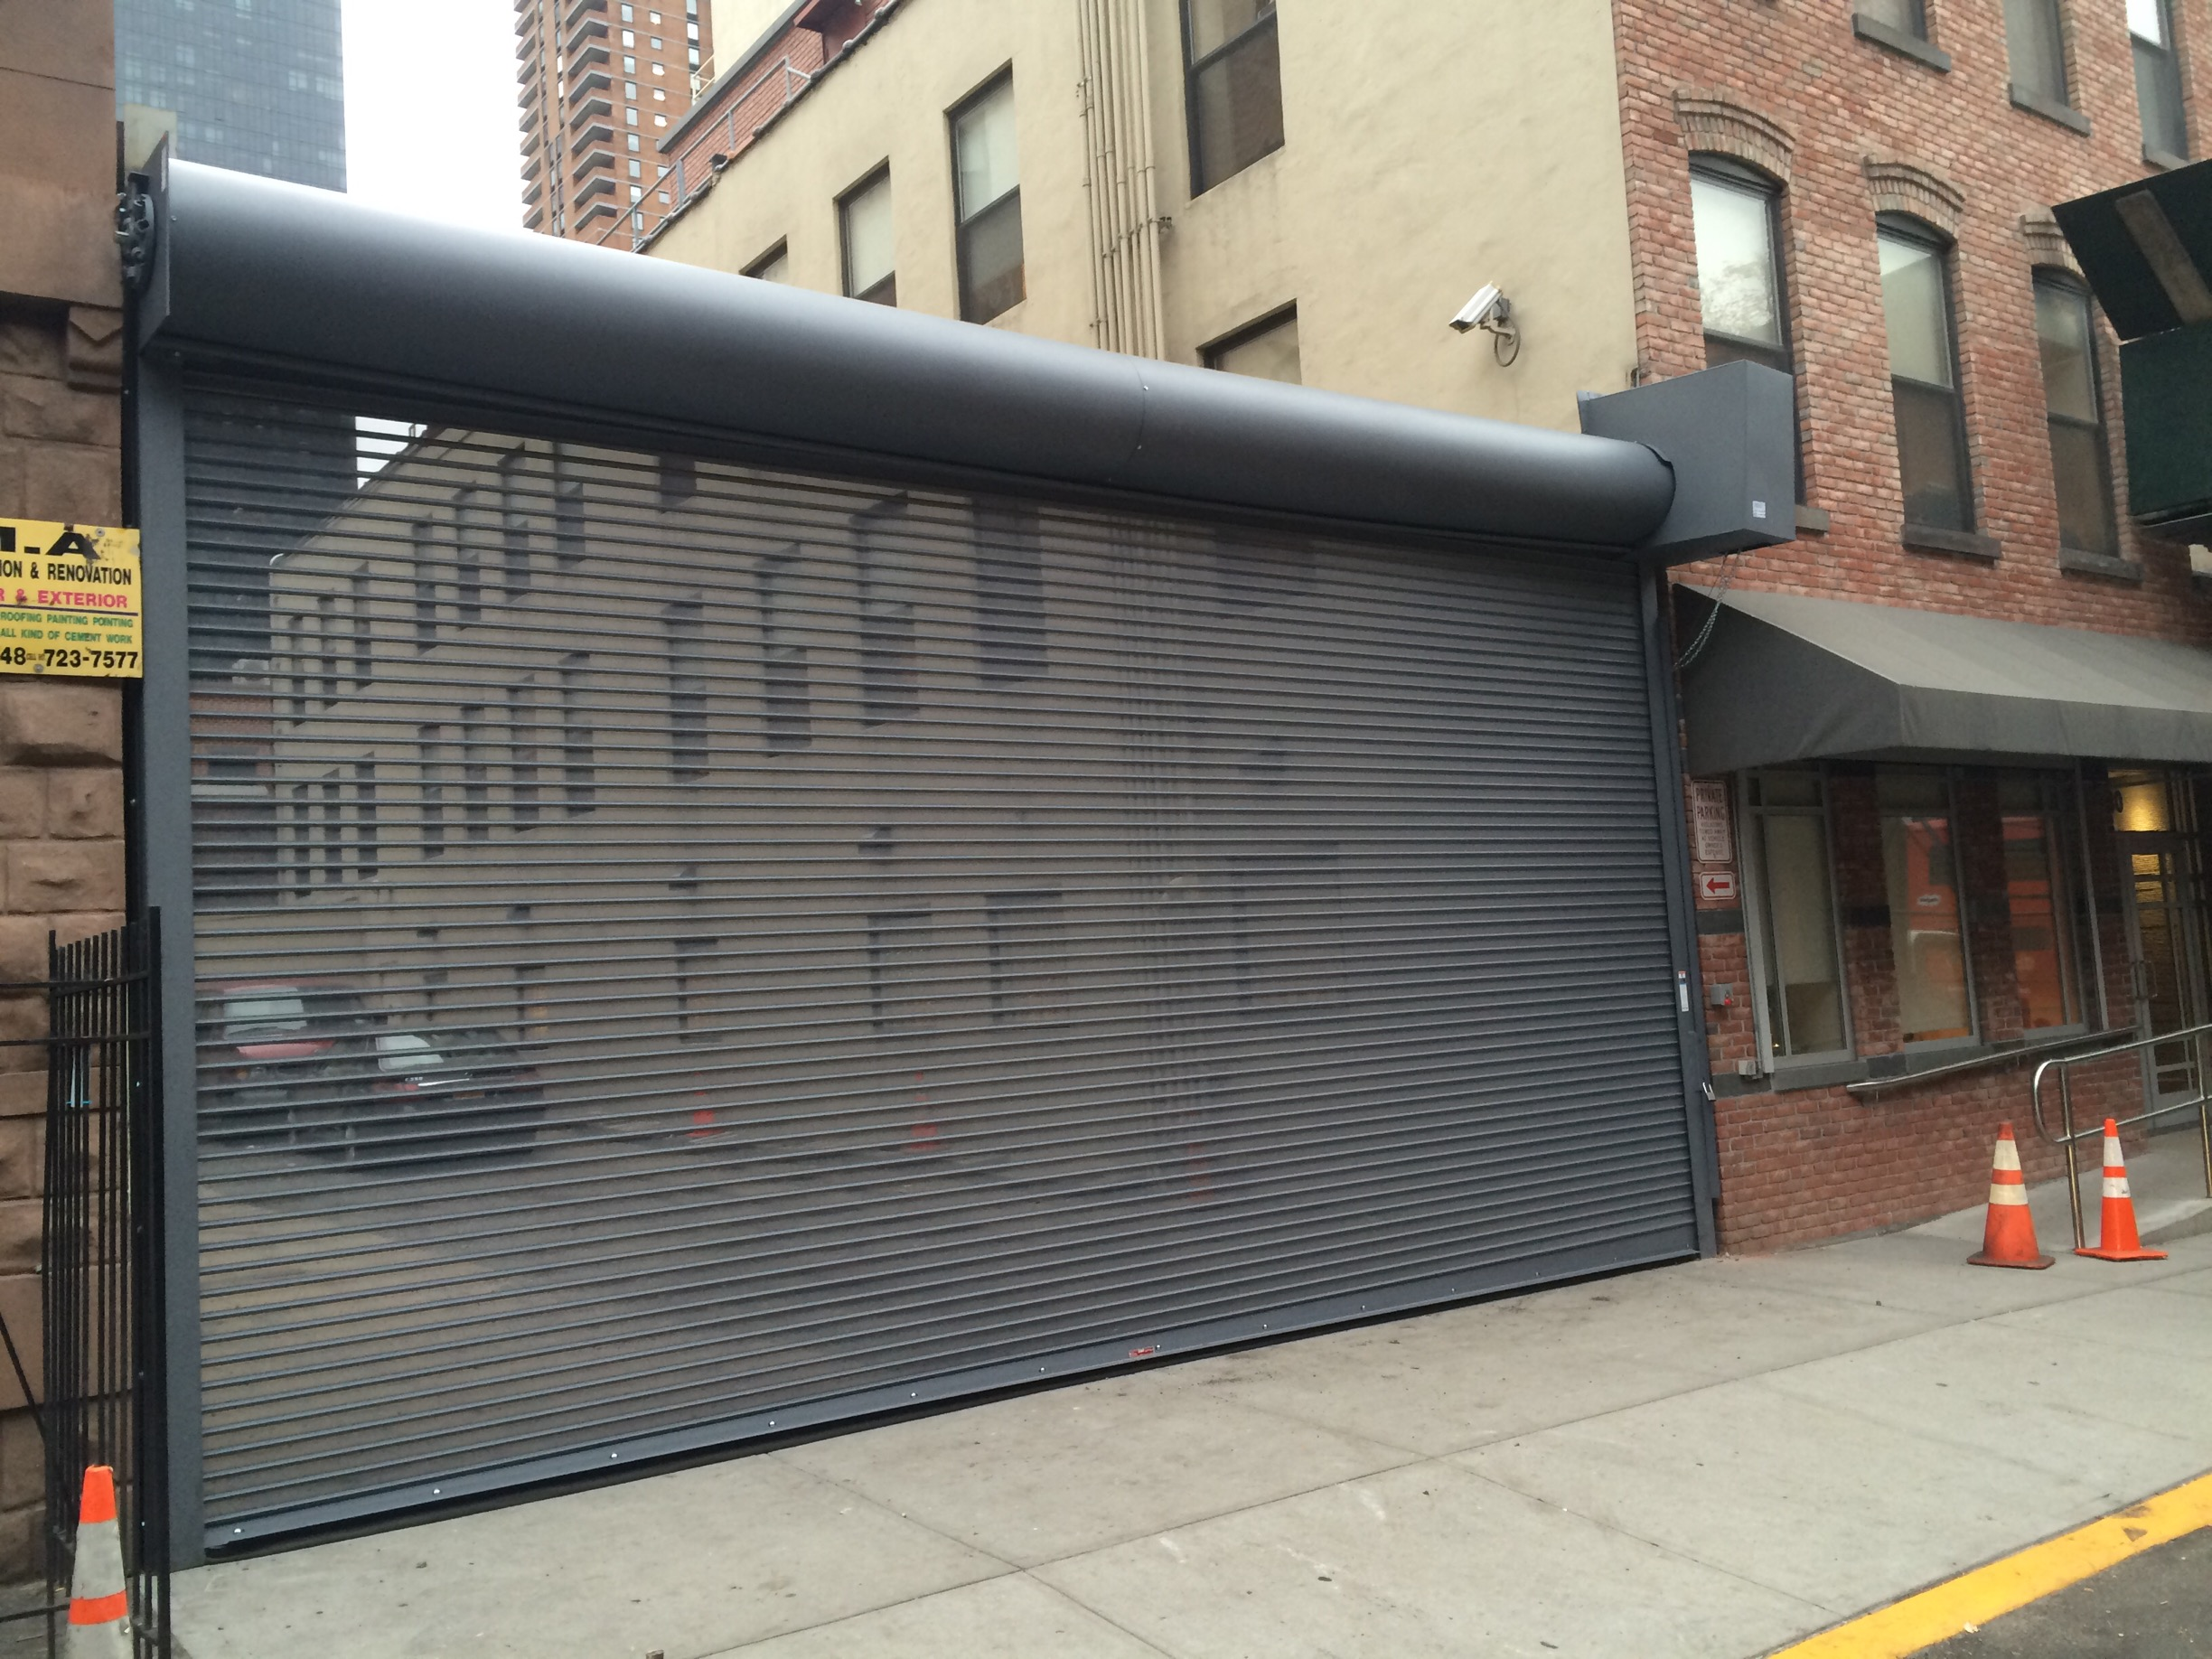 repair mesh perforated punched hole open air visibility rolling door shutter new york city new jersey & Finest Doorman Blog | Loading Dock New Jersey - New York | motorized ...